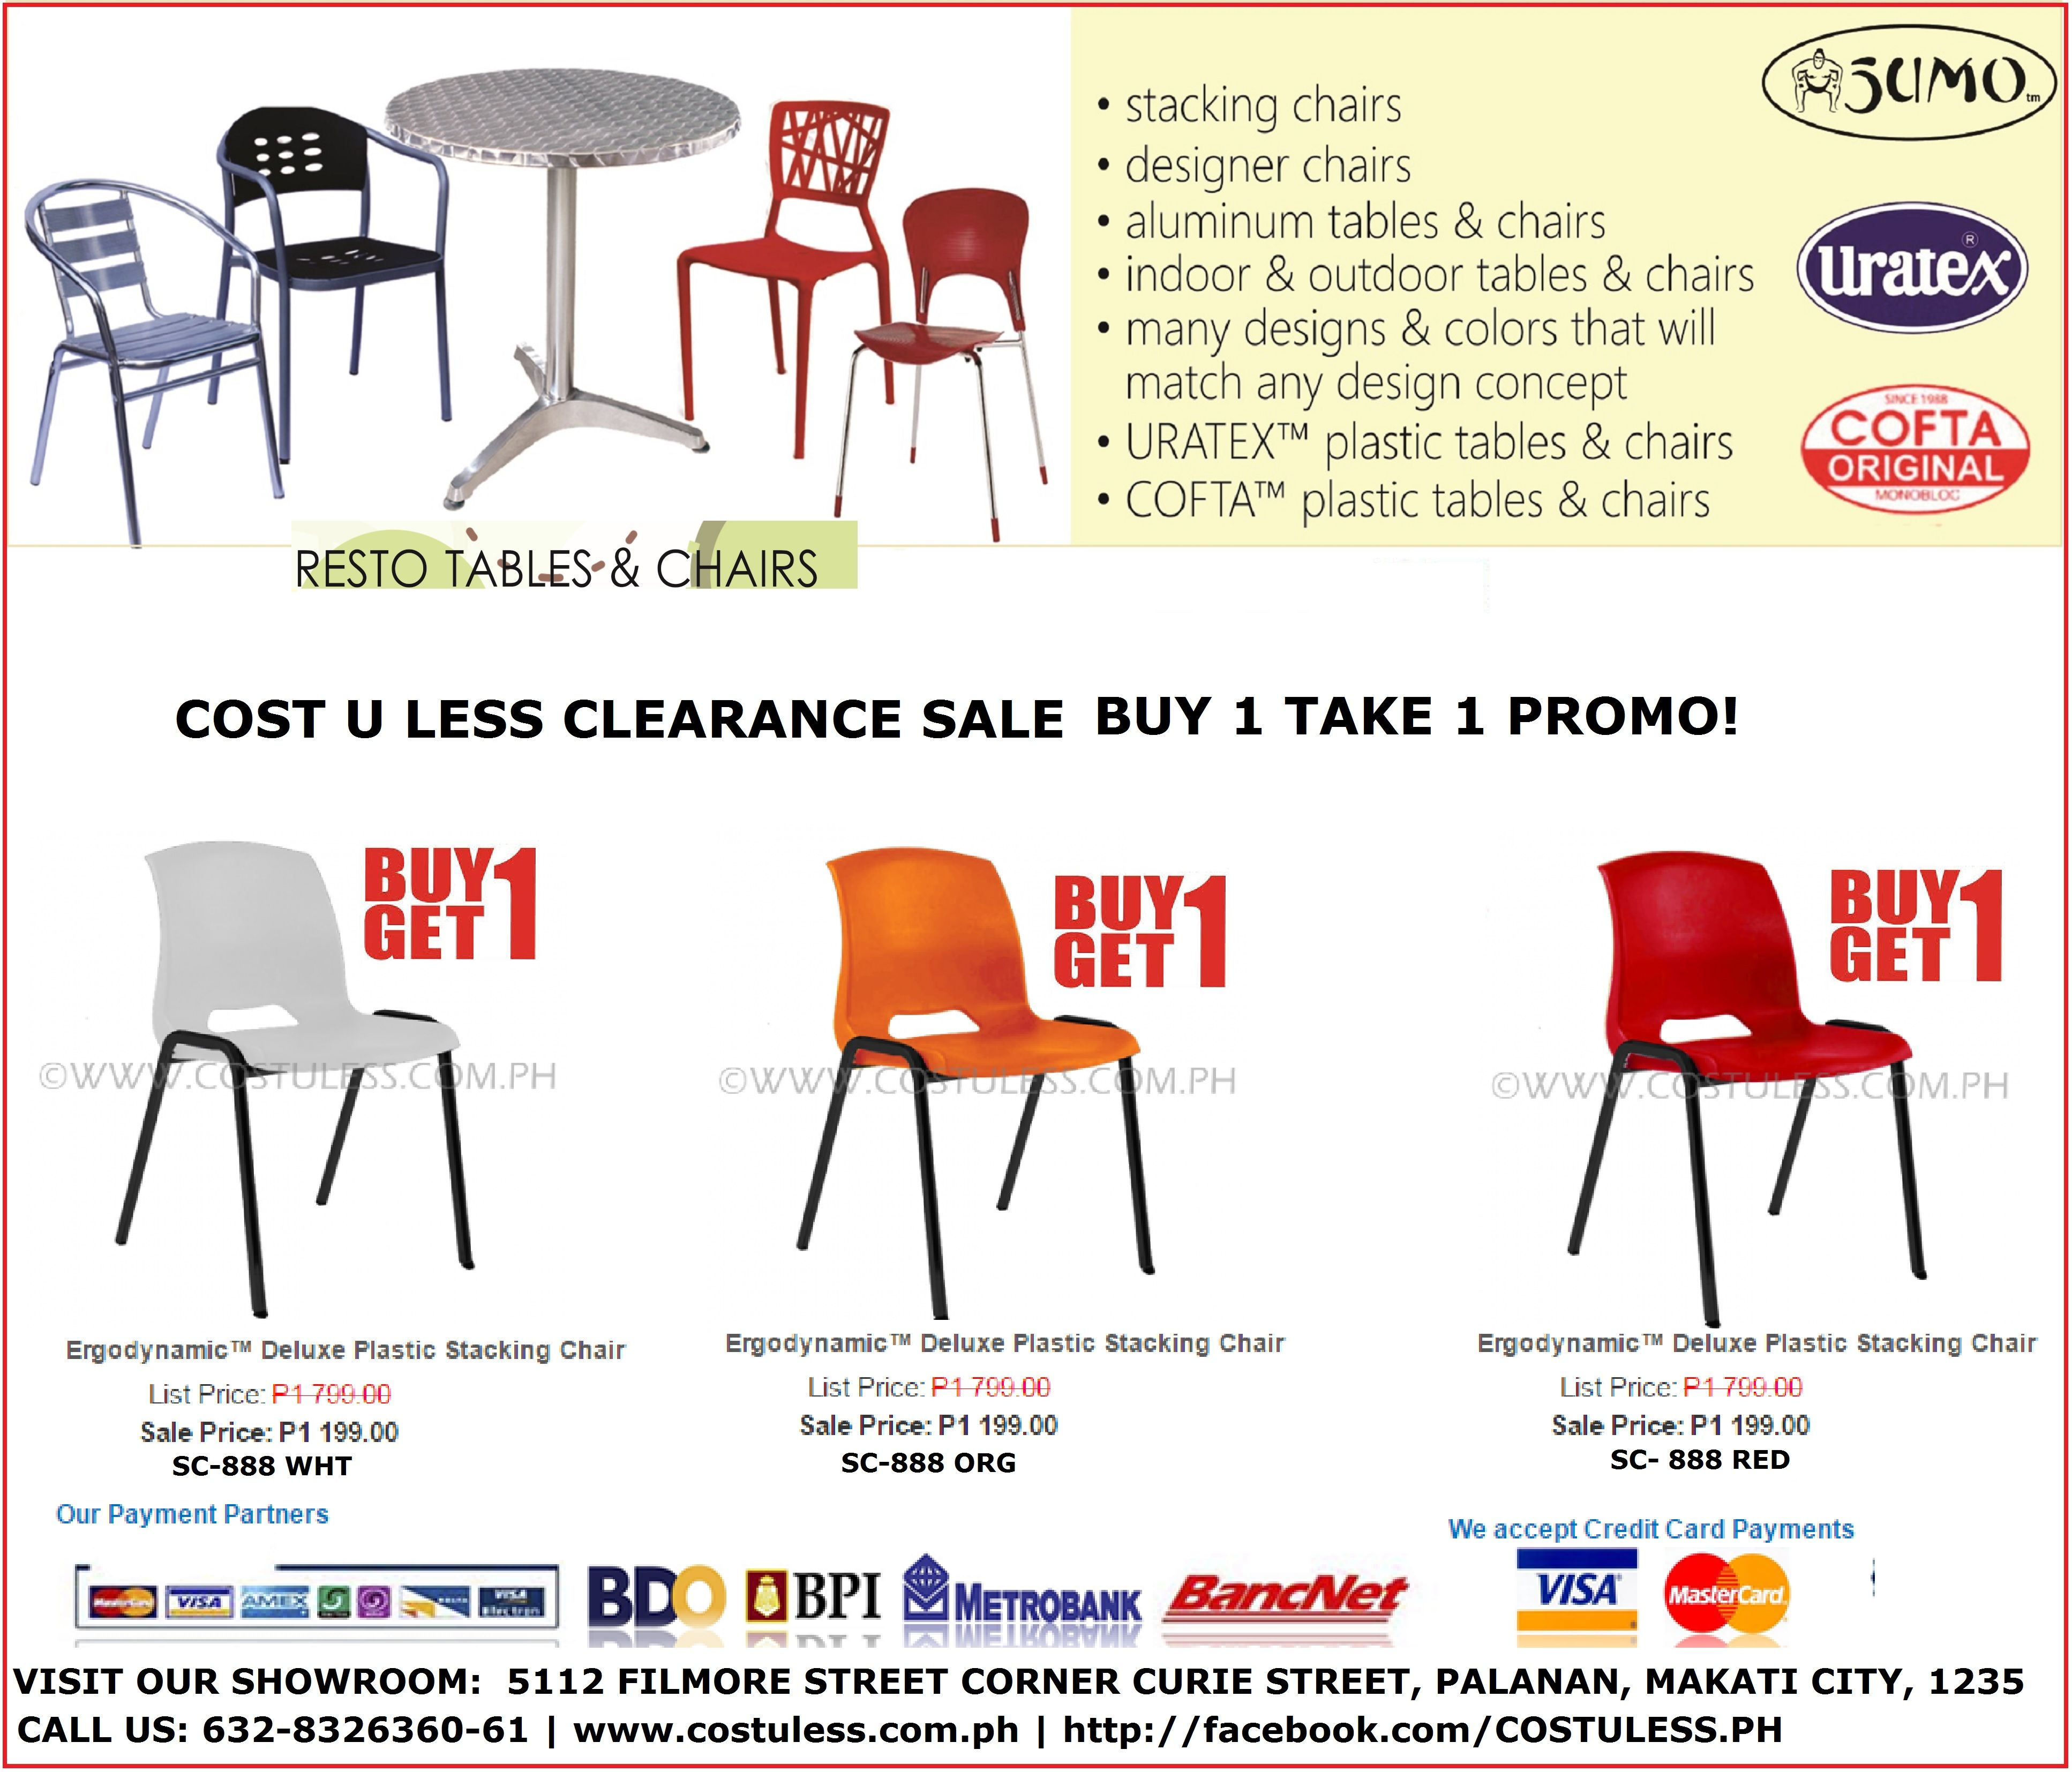 Home Restaurant Furniture Sale Cost U Less Clearance Promo Buy